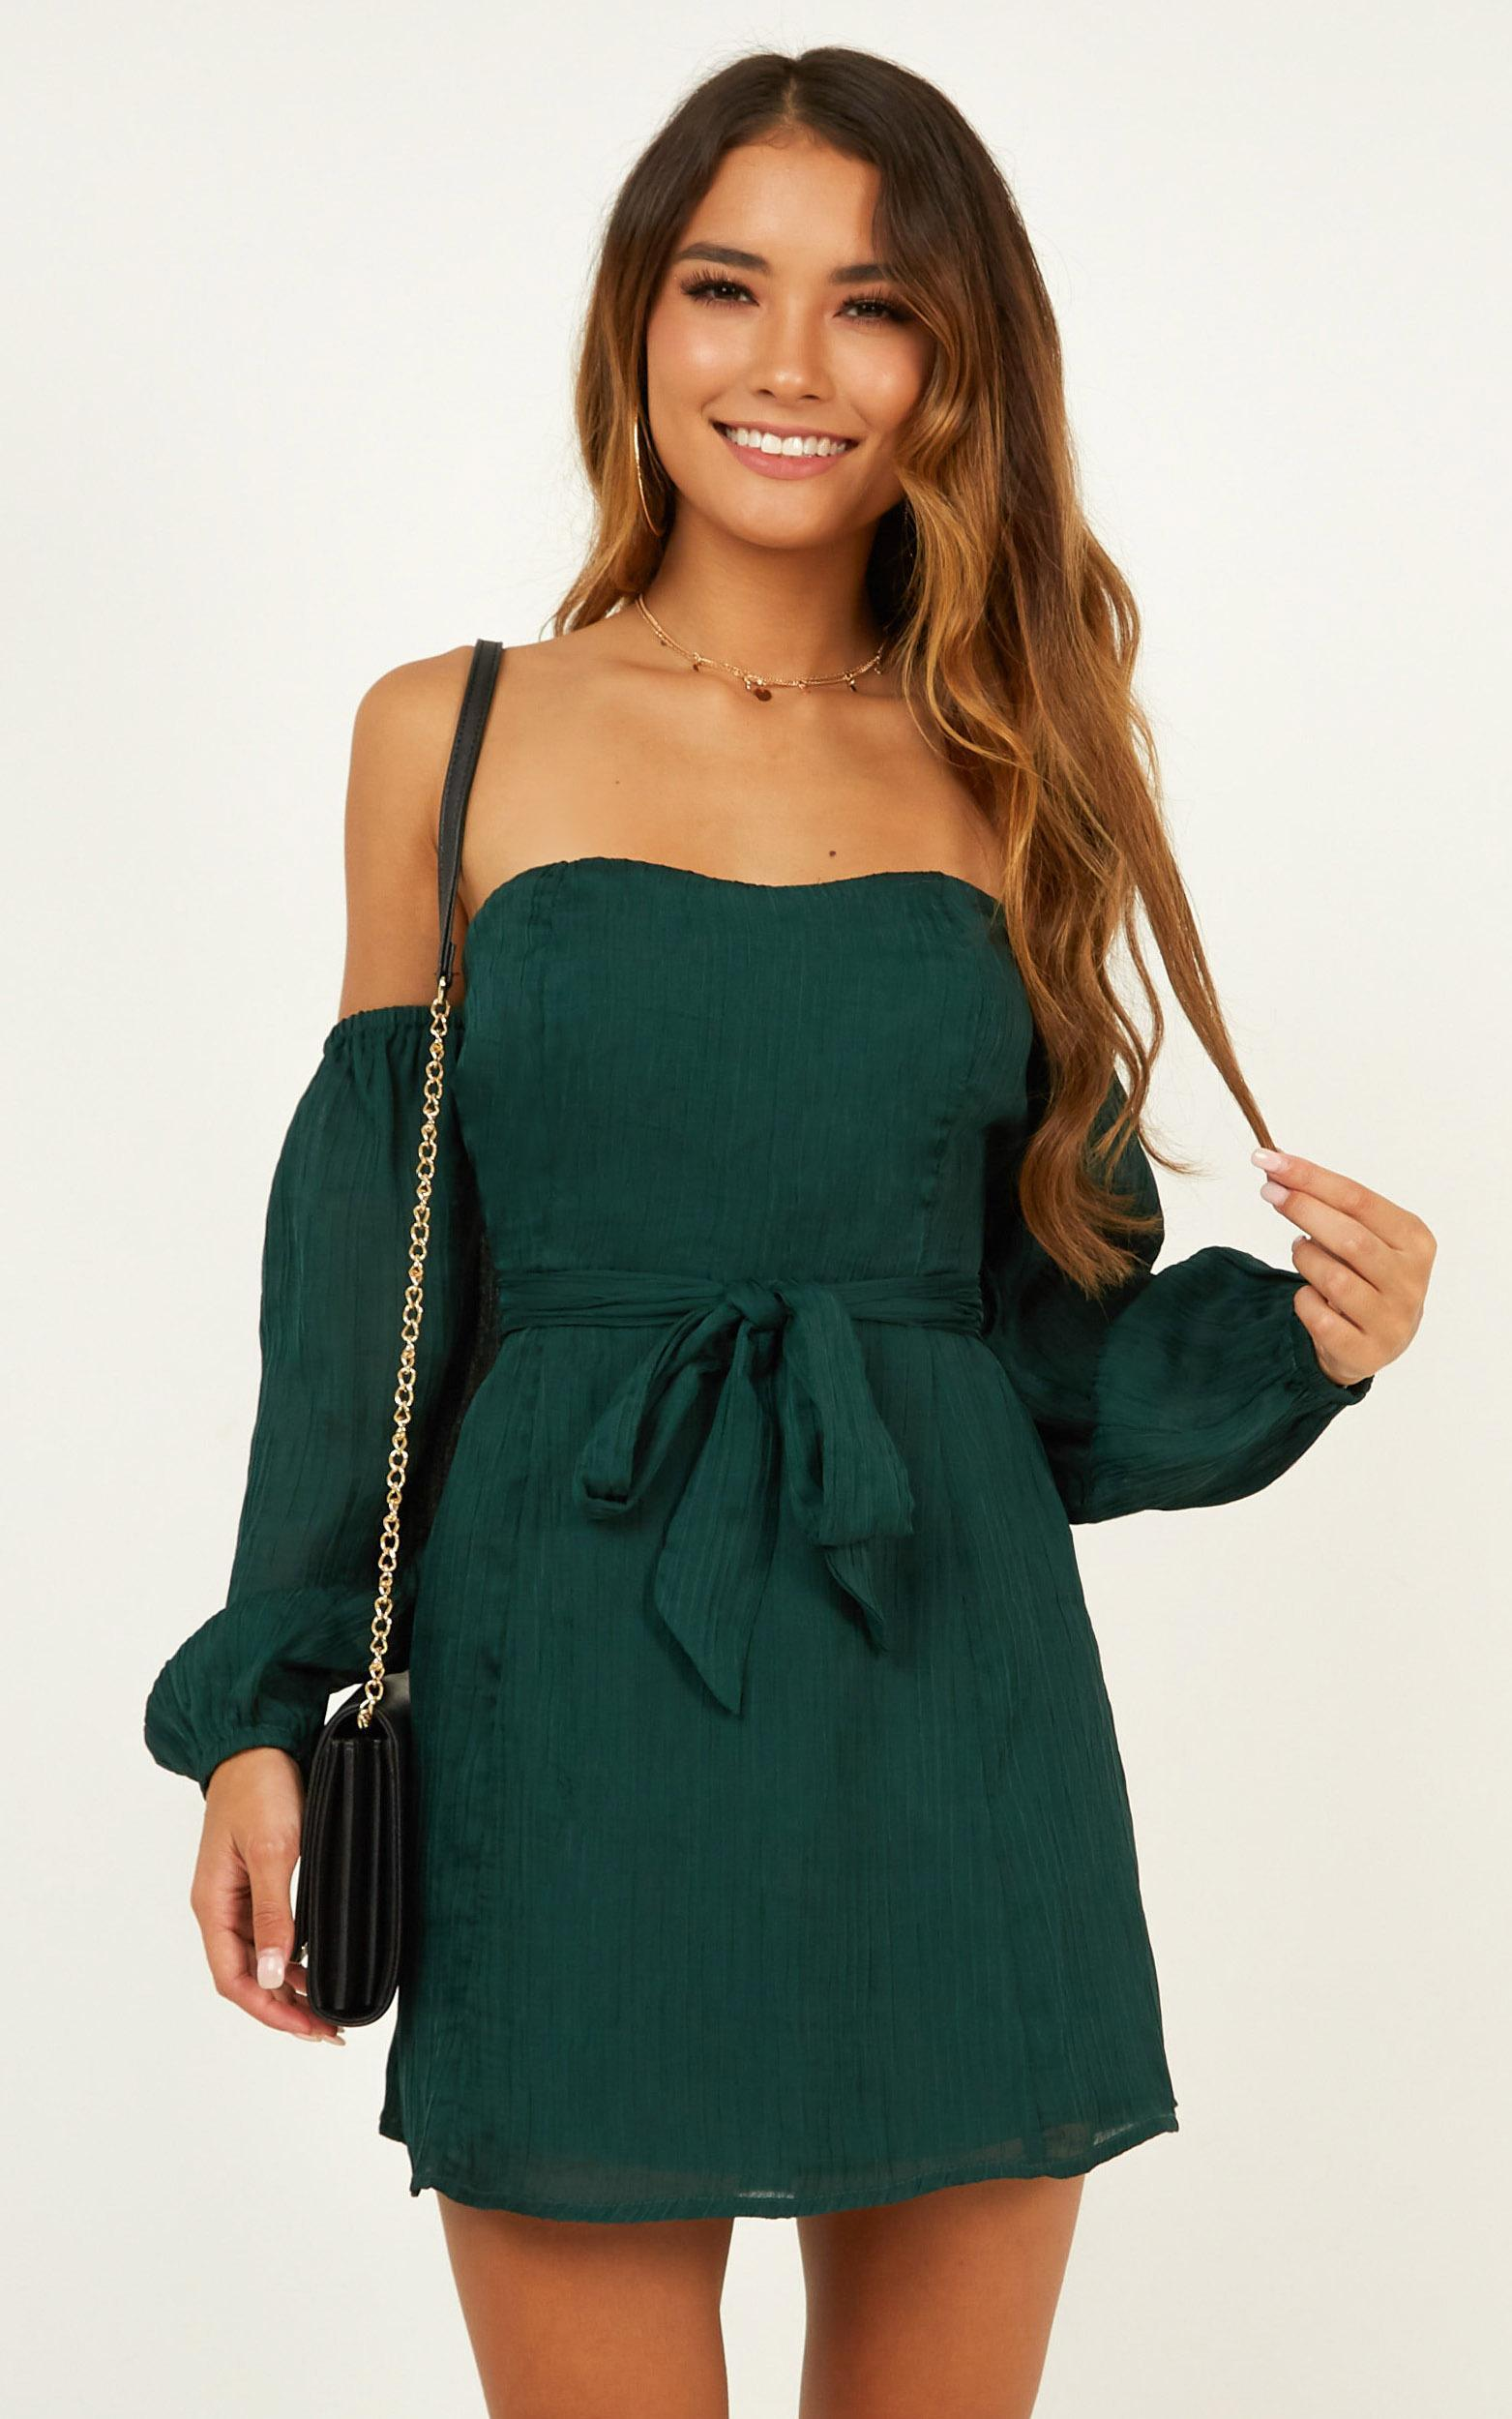 Steaming Ahead Dress in emerald - 20 (XXXXL), Green, hi-res image number null